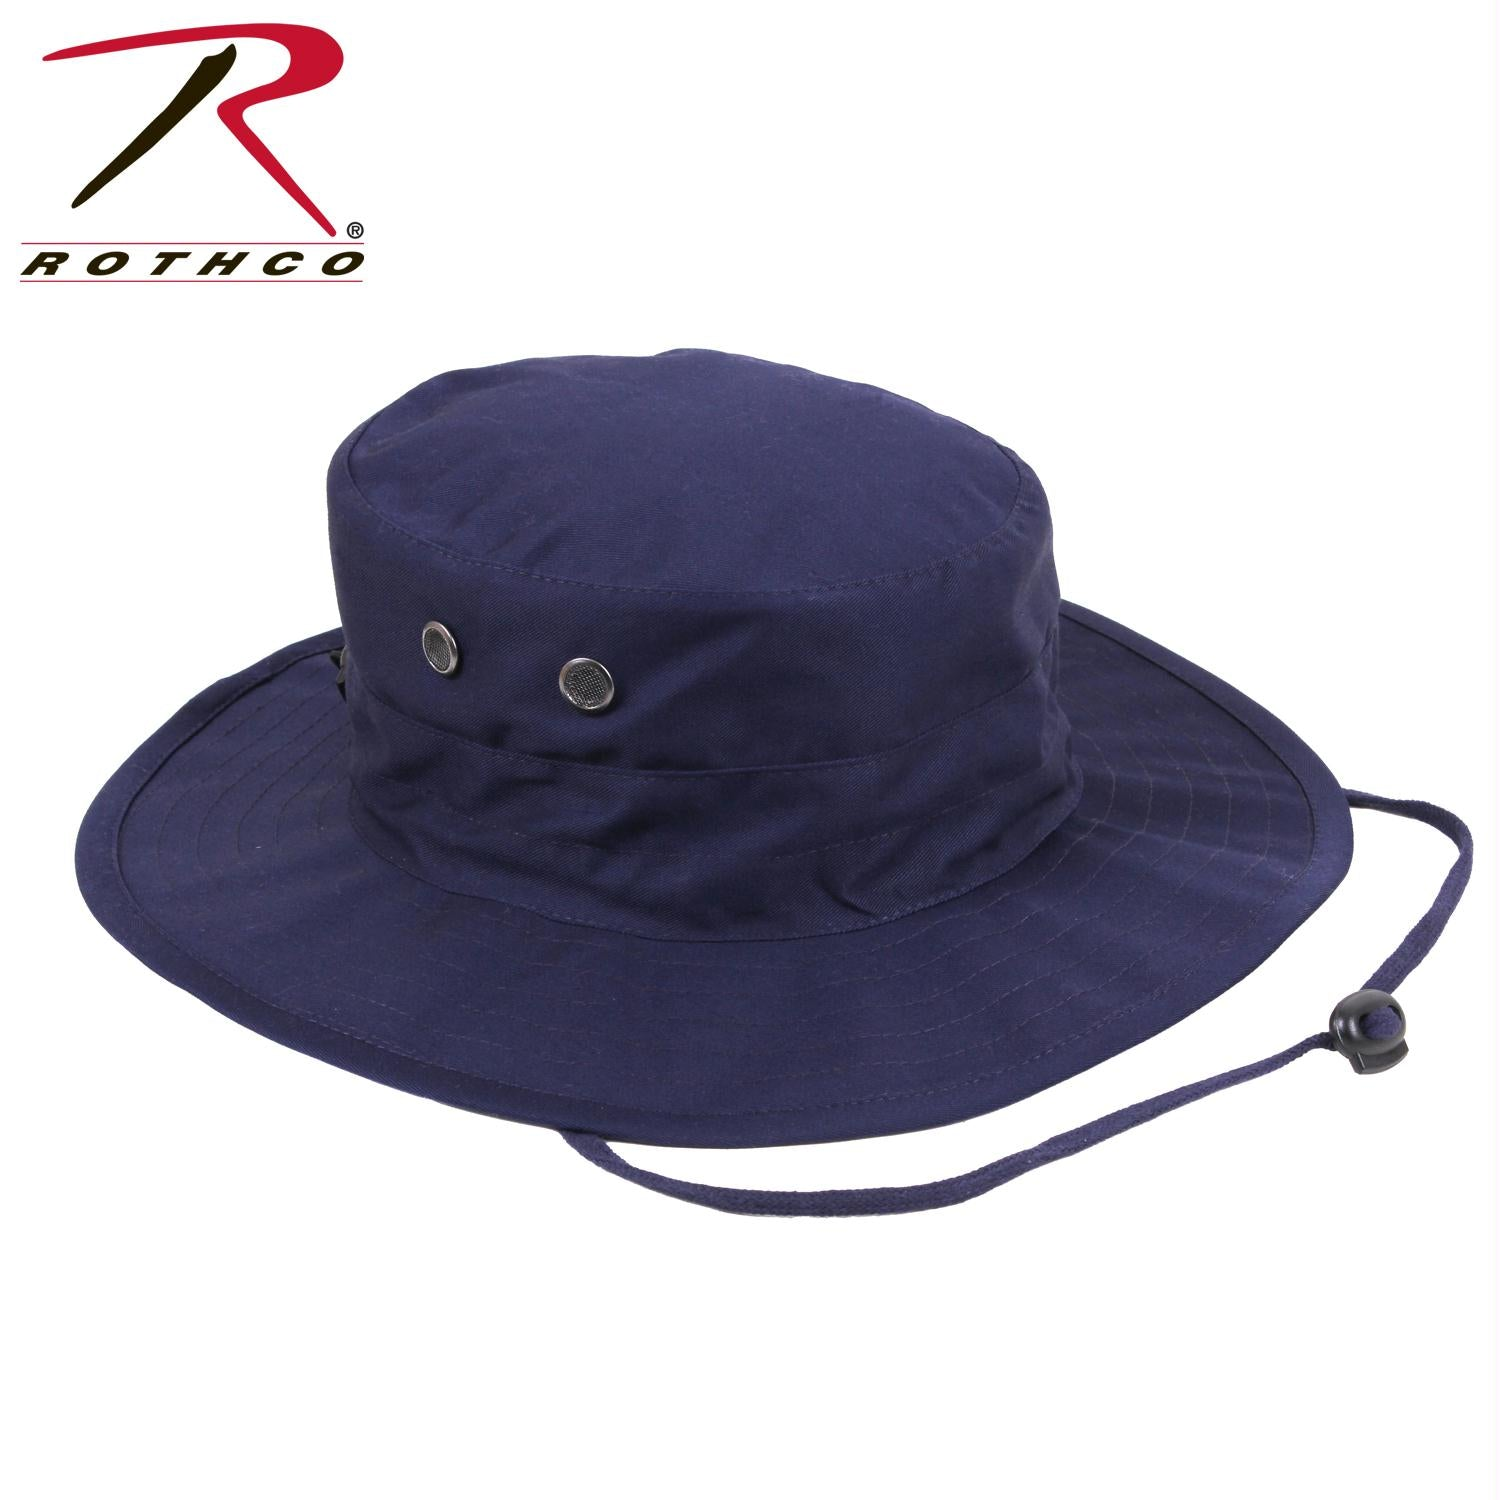 Rothco Adjustable Boonie Hat - Navy Blue / One Size